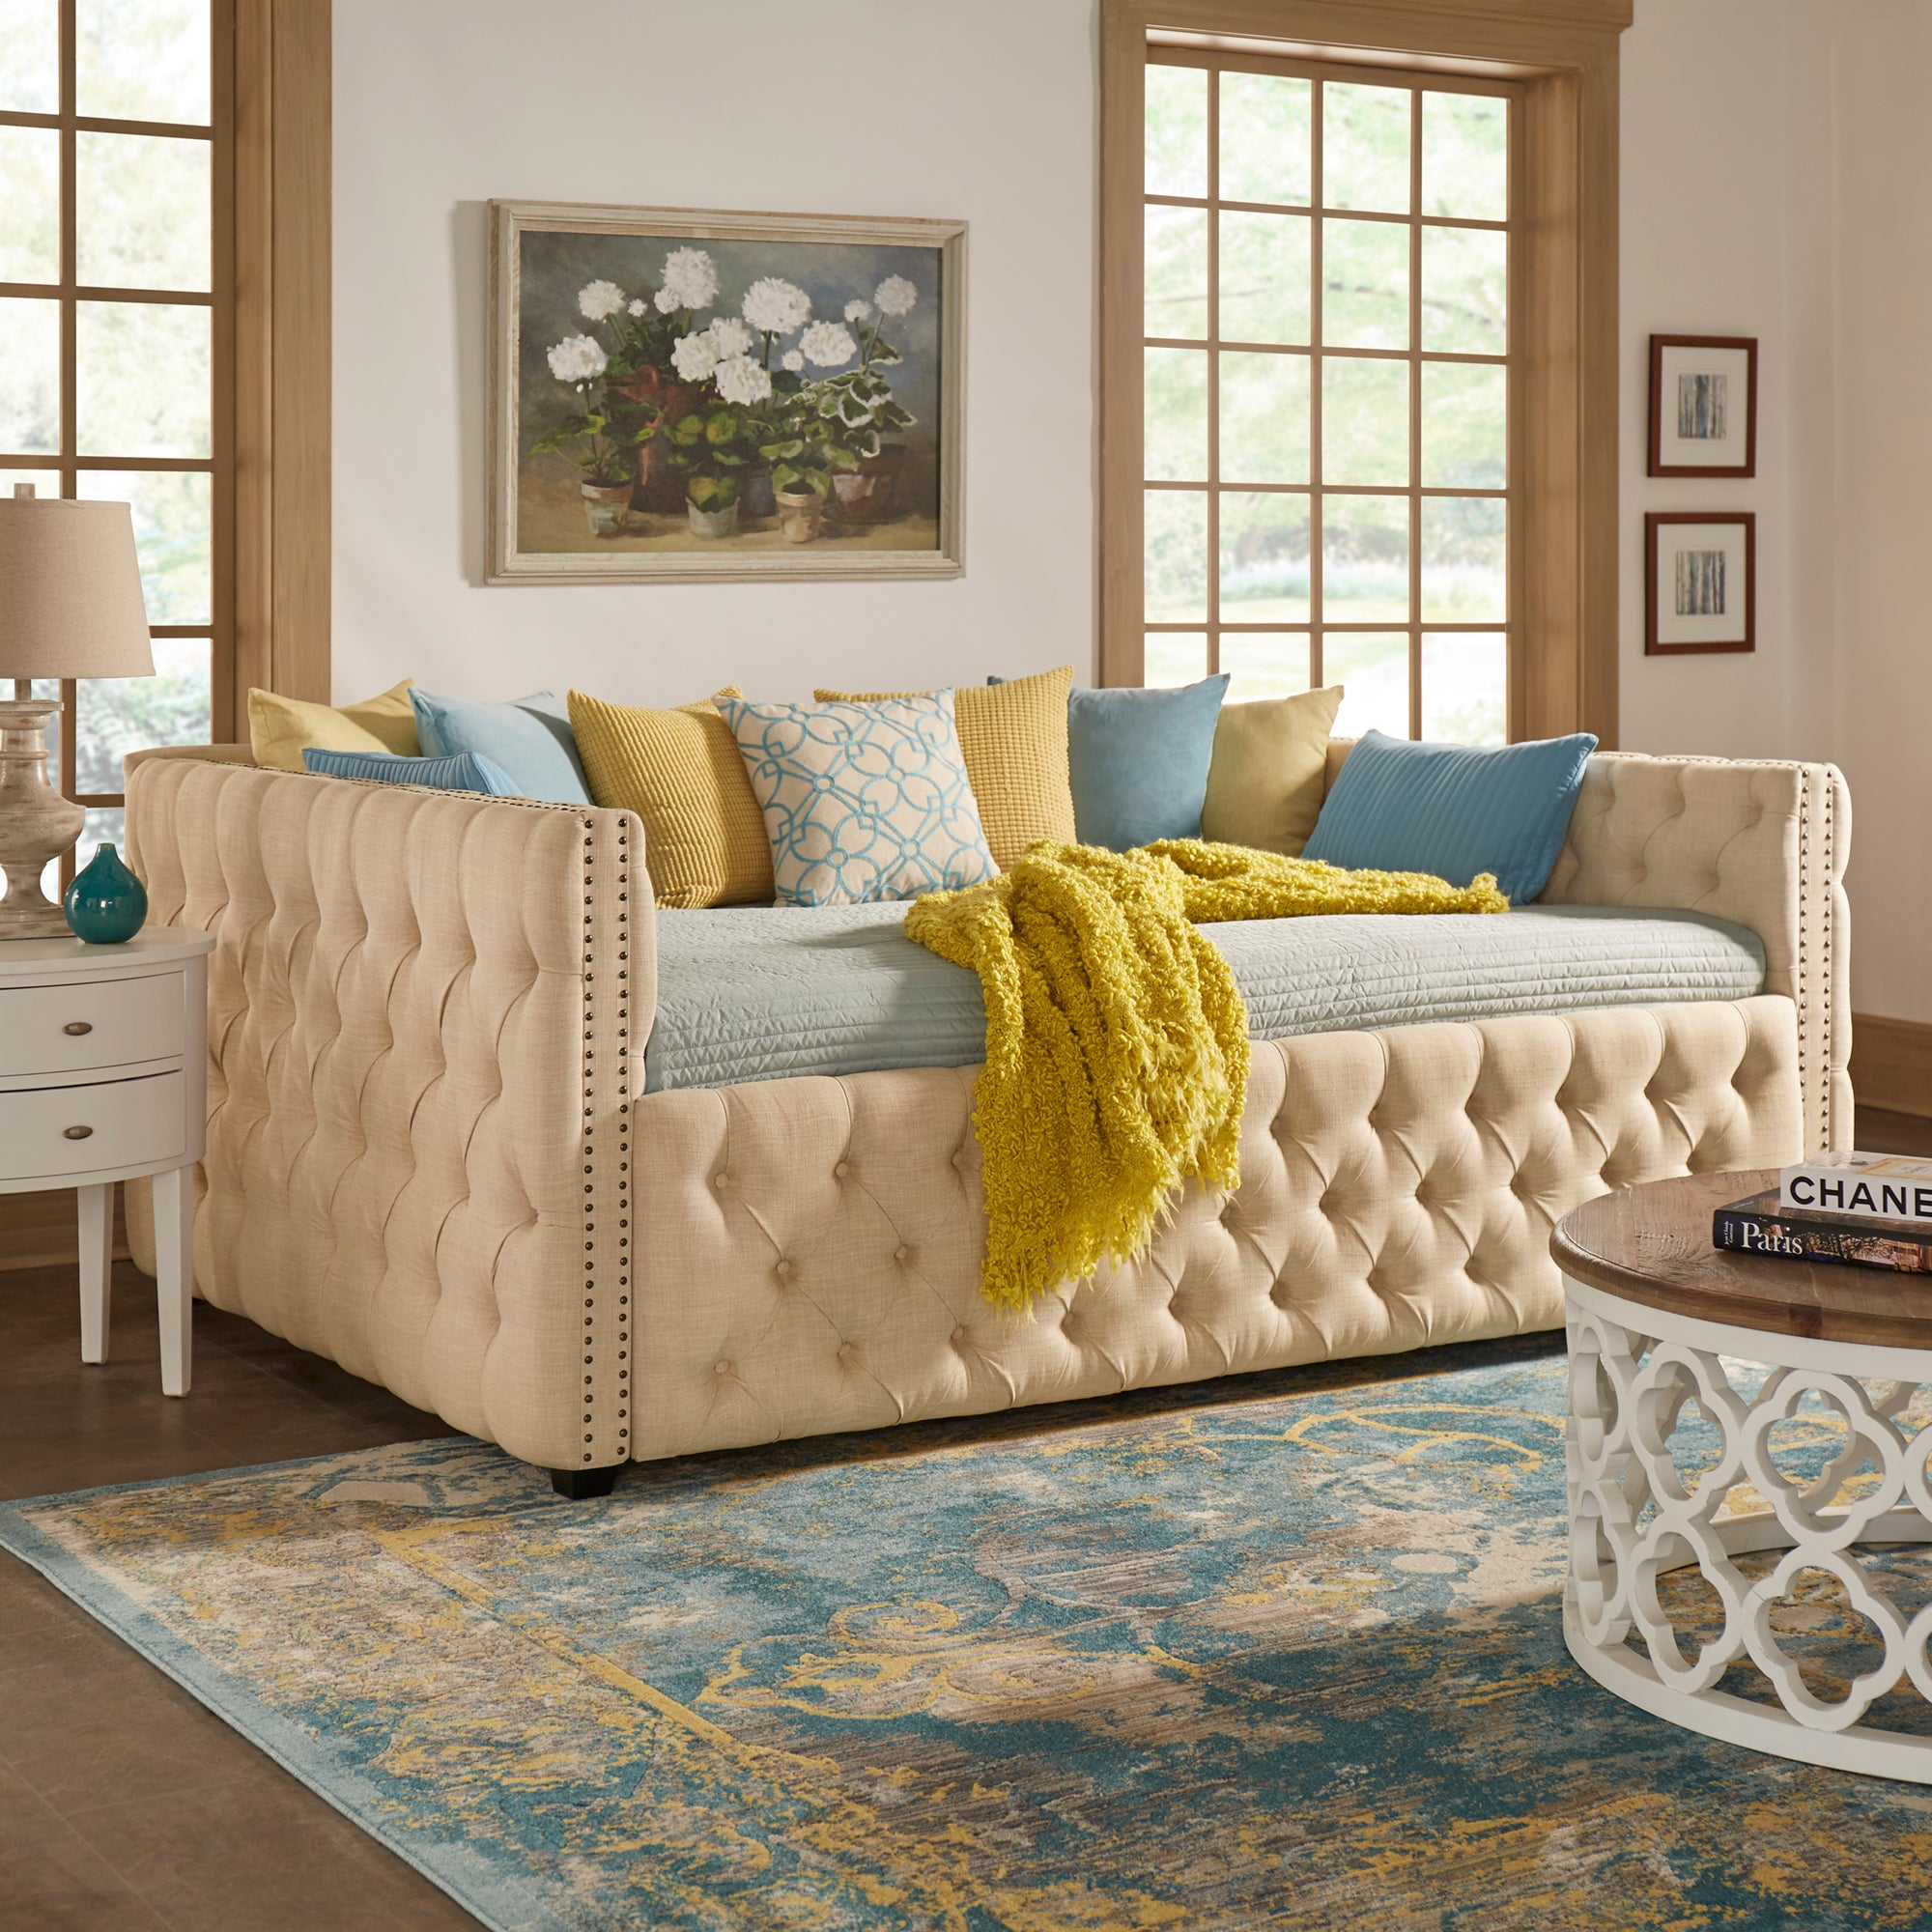 Tufted Nailhead Daybed and Trundle - Beige Linen, Queen Size, No Trundle